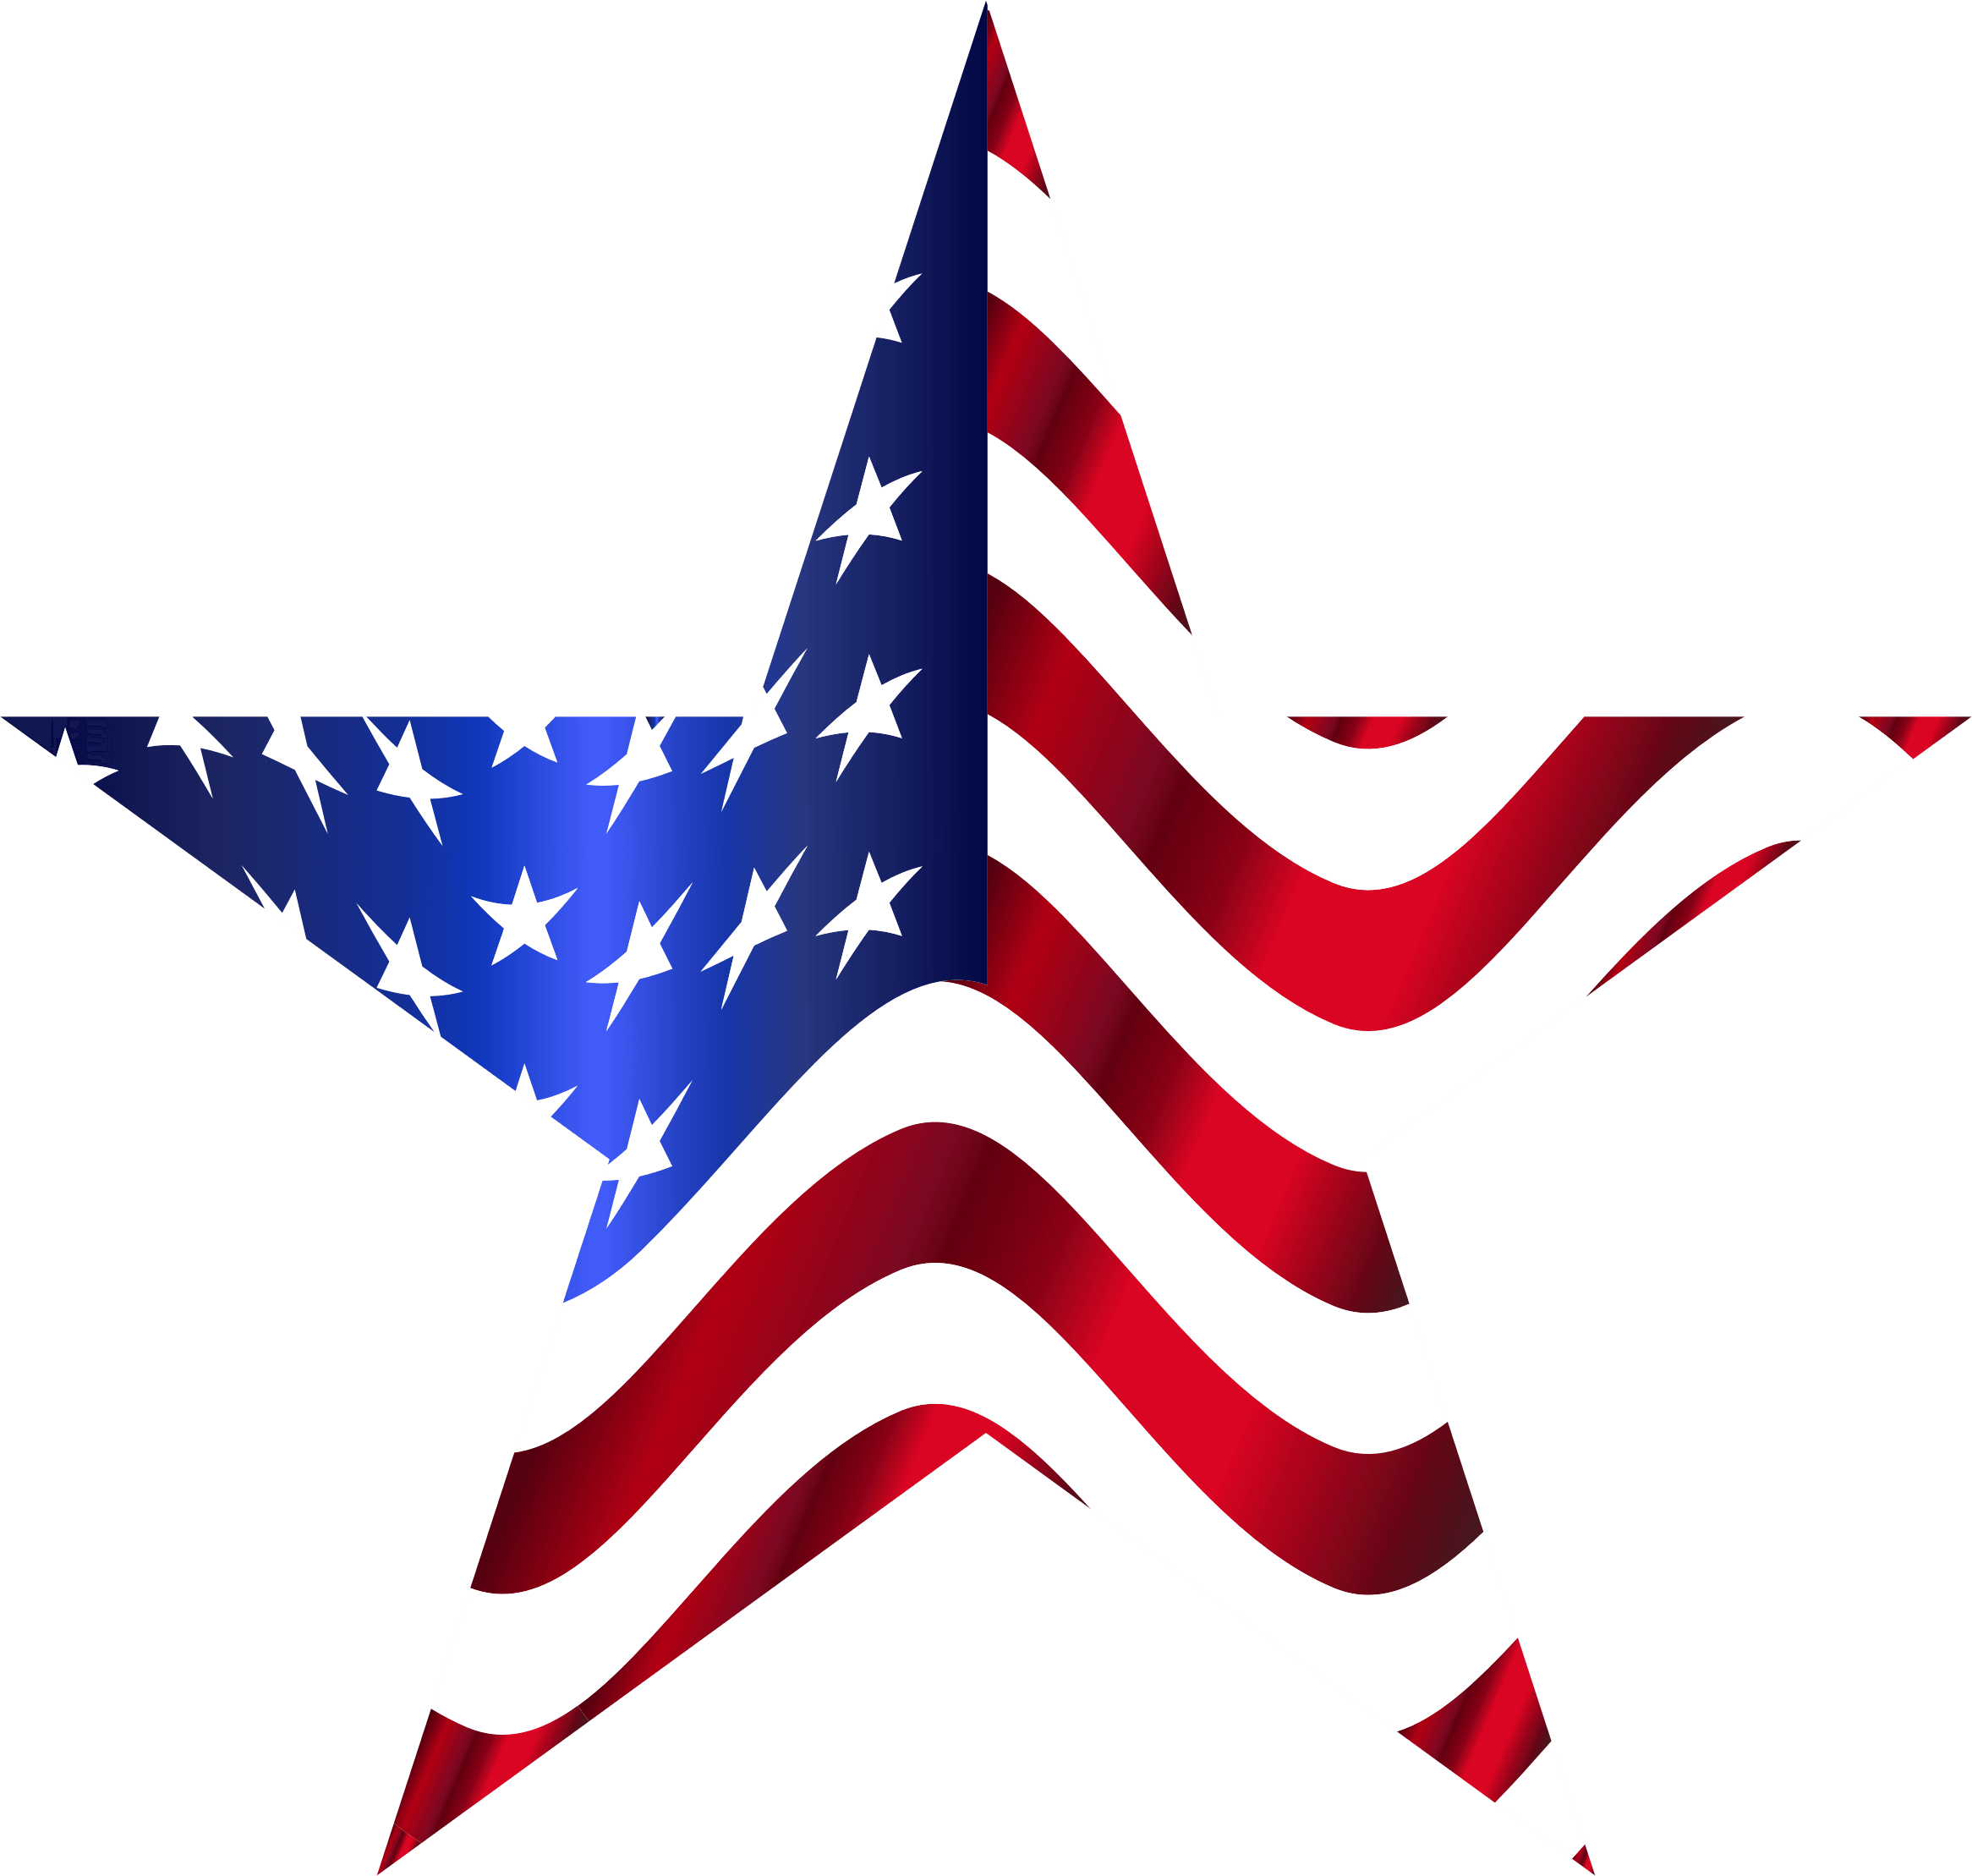 Star American Flag Transparent Png Photo 6778